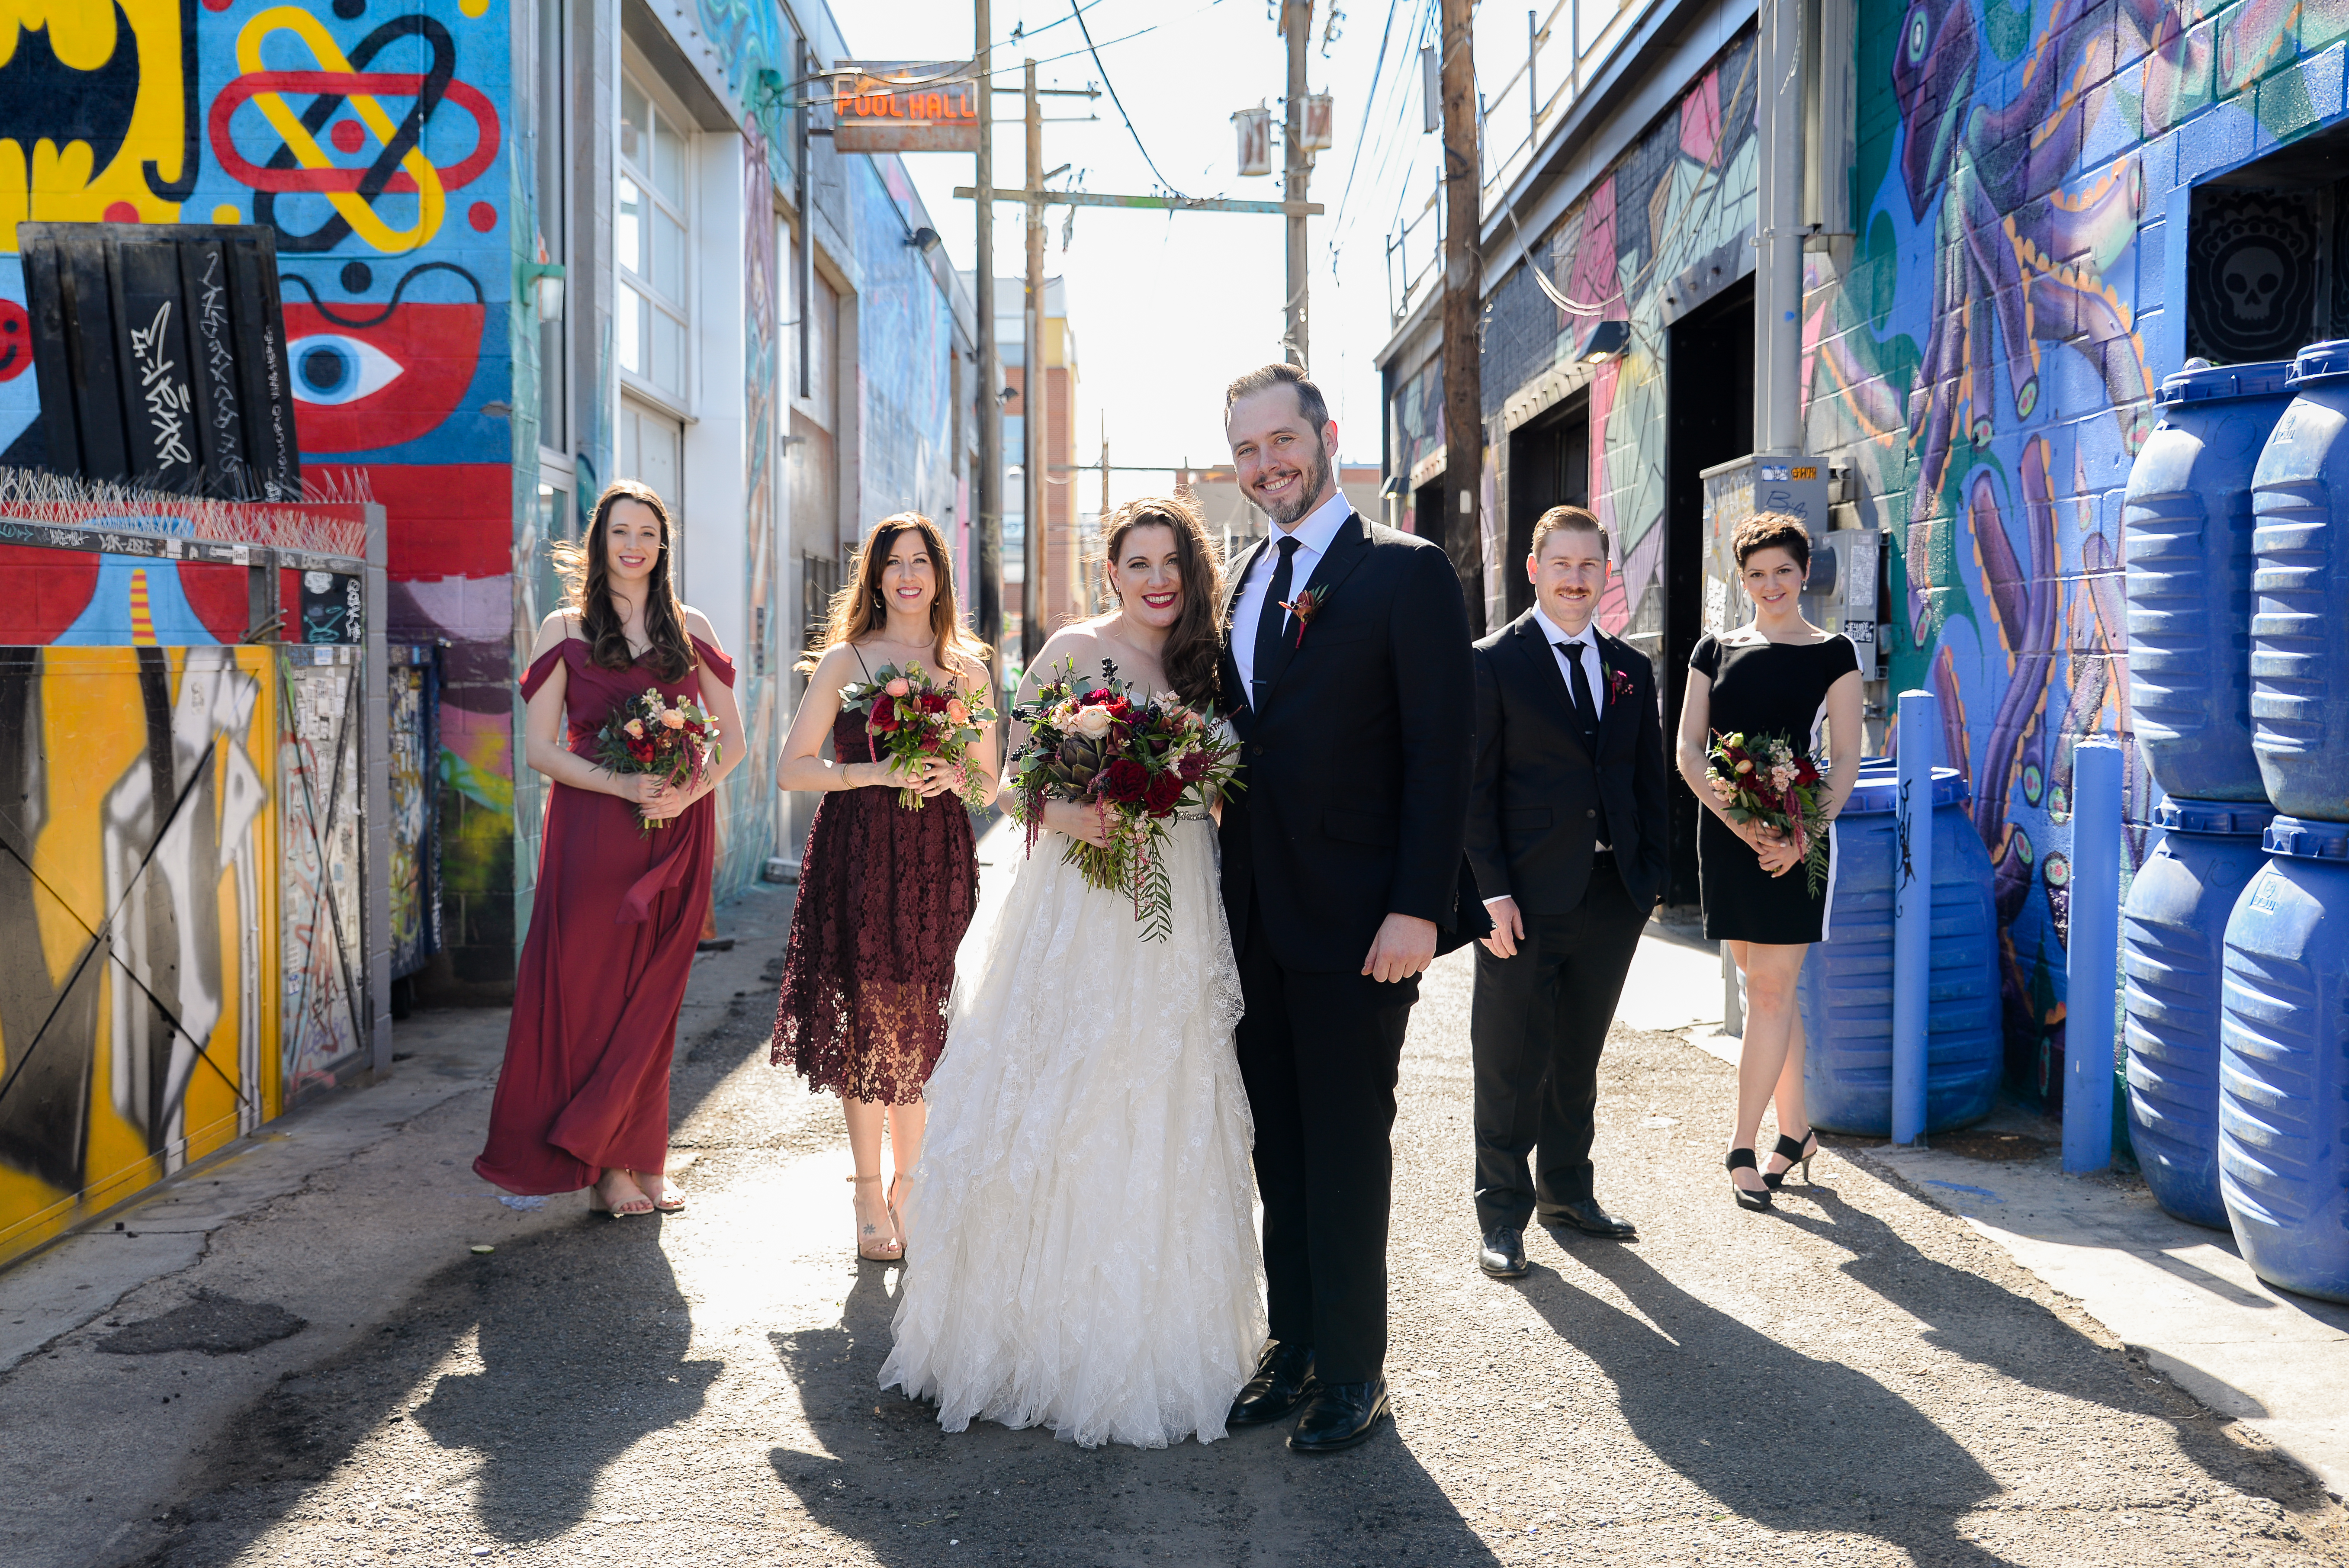 Bridal party in graffiti alley